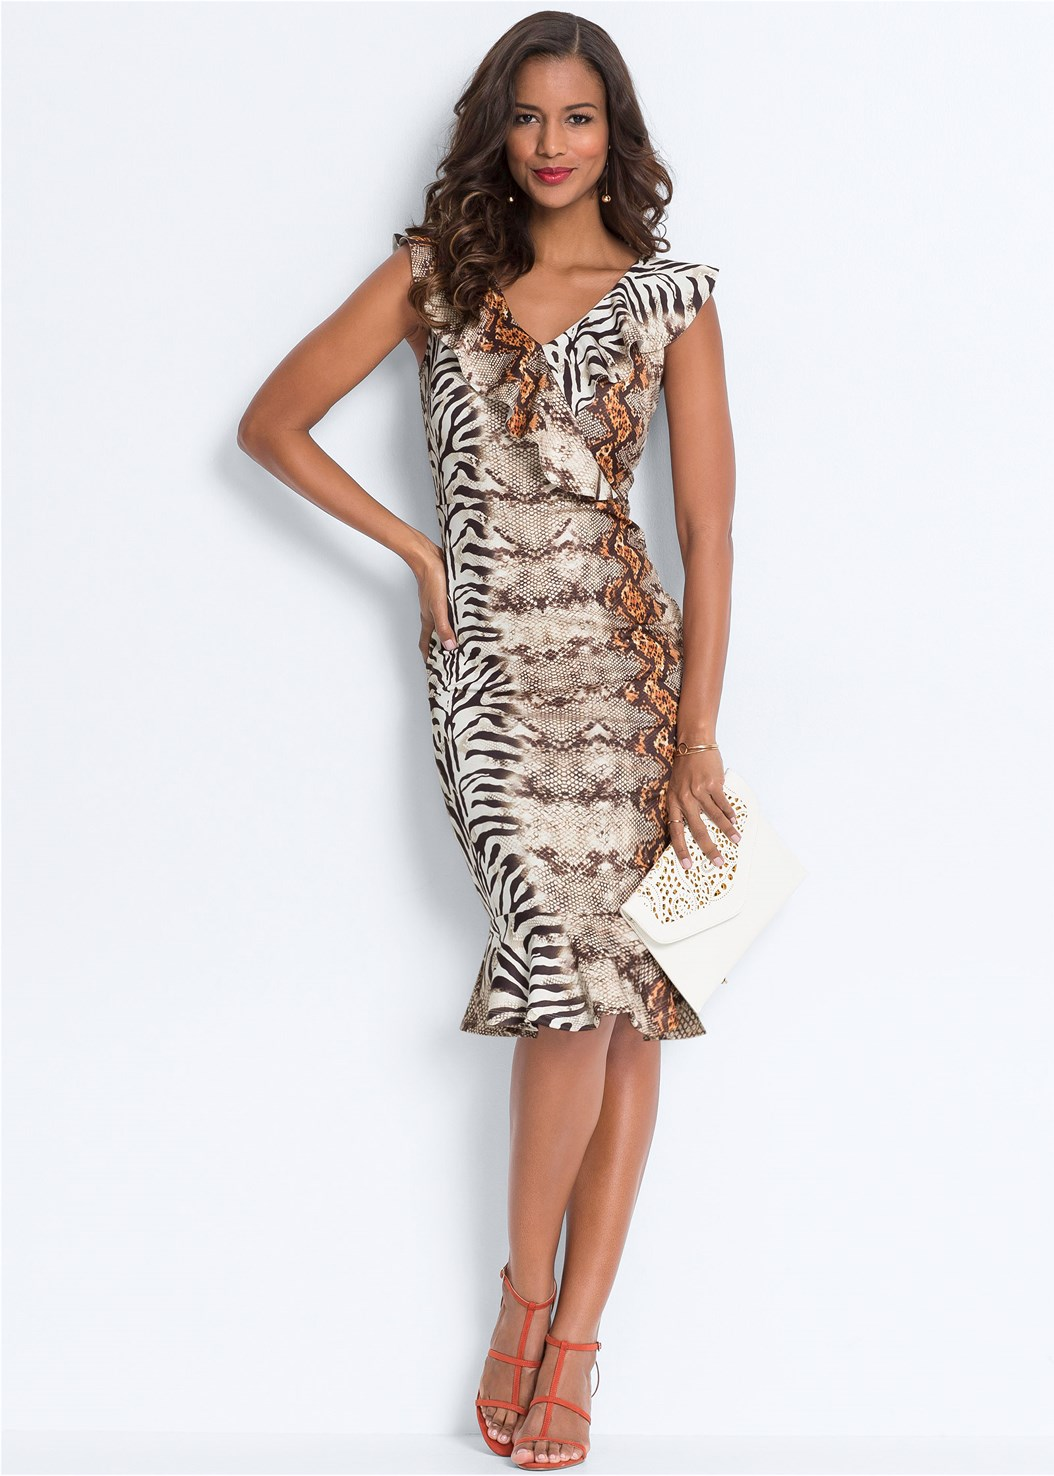 Mixed Animal Print Dress,Push Up Bra Buy 2 For $40